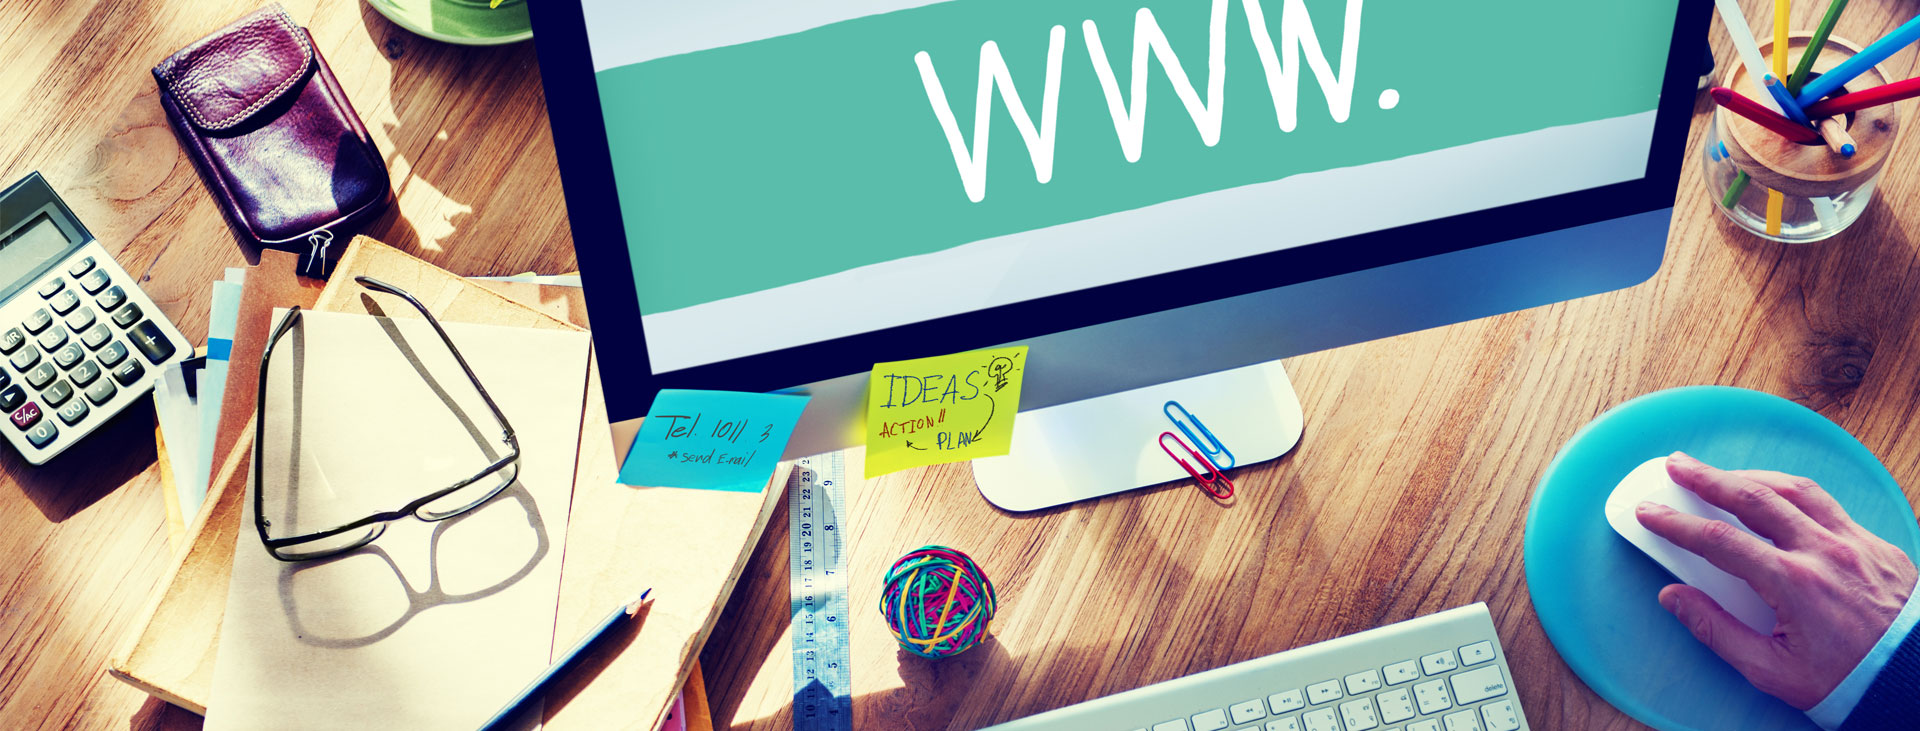 National storytelling week: what does your website say about your business?